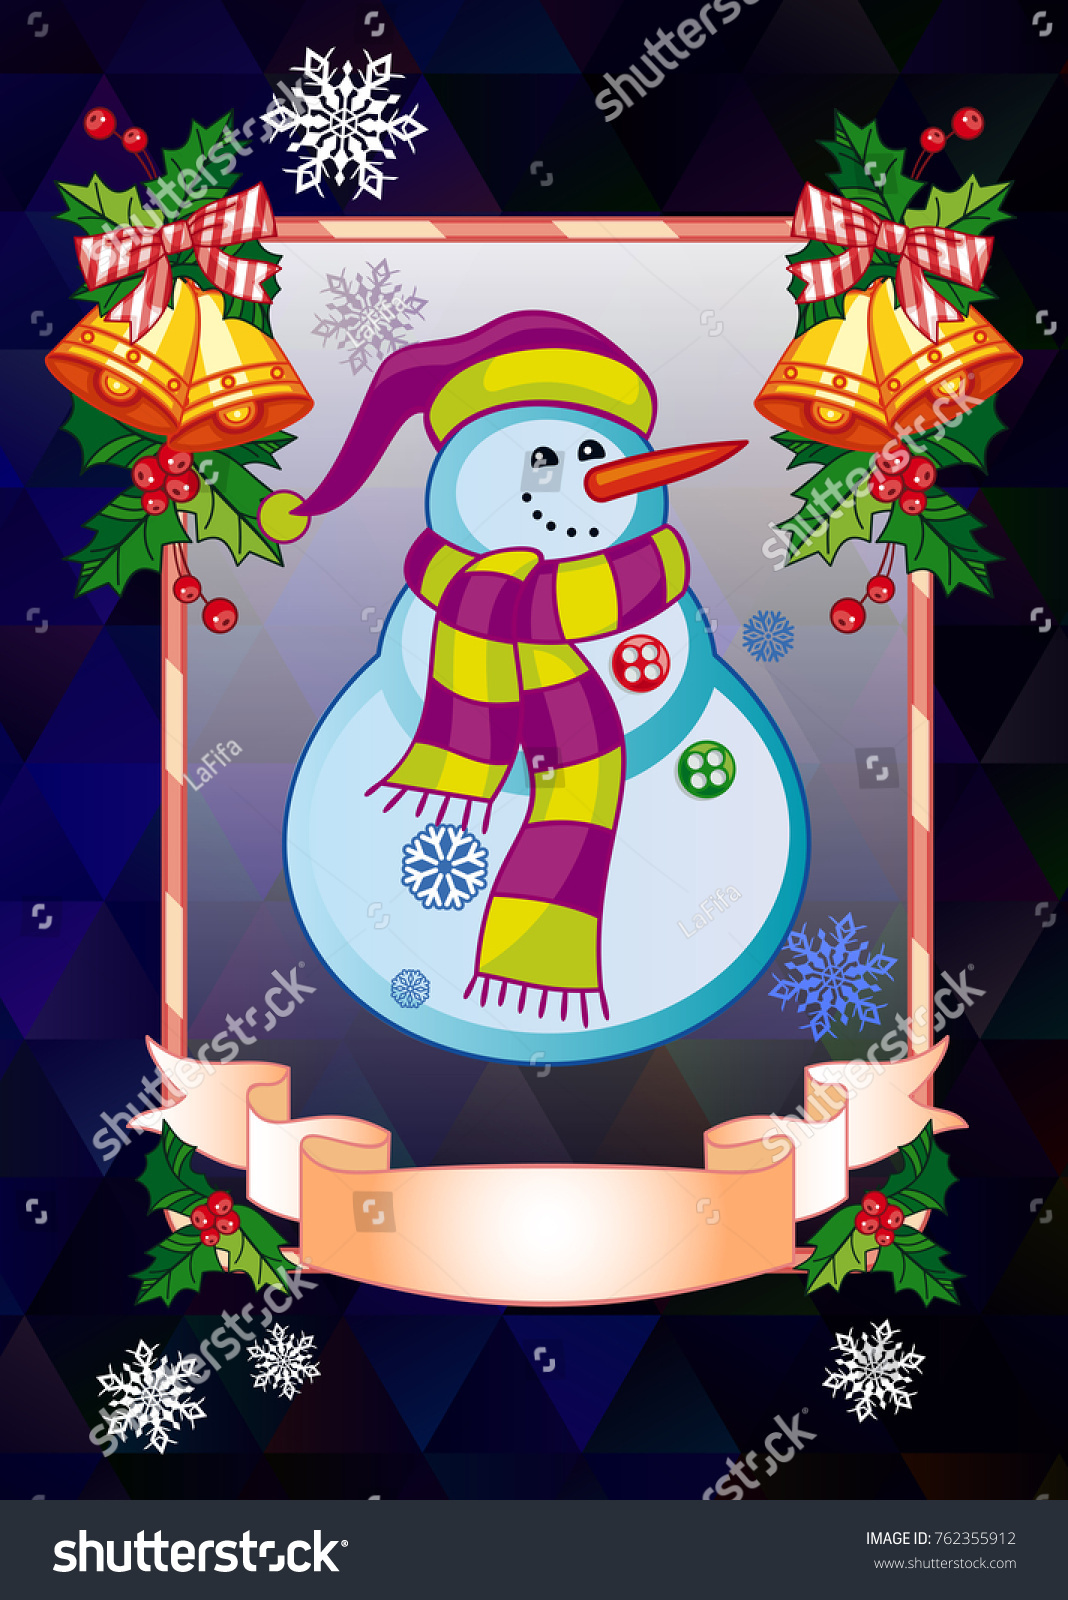 Holiday christmas card with funny snowman on a colorful mosaic ...